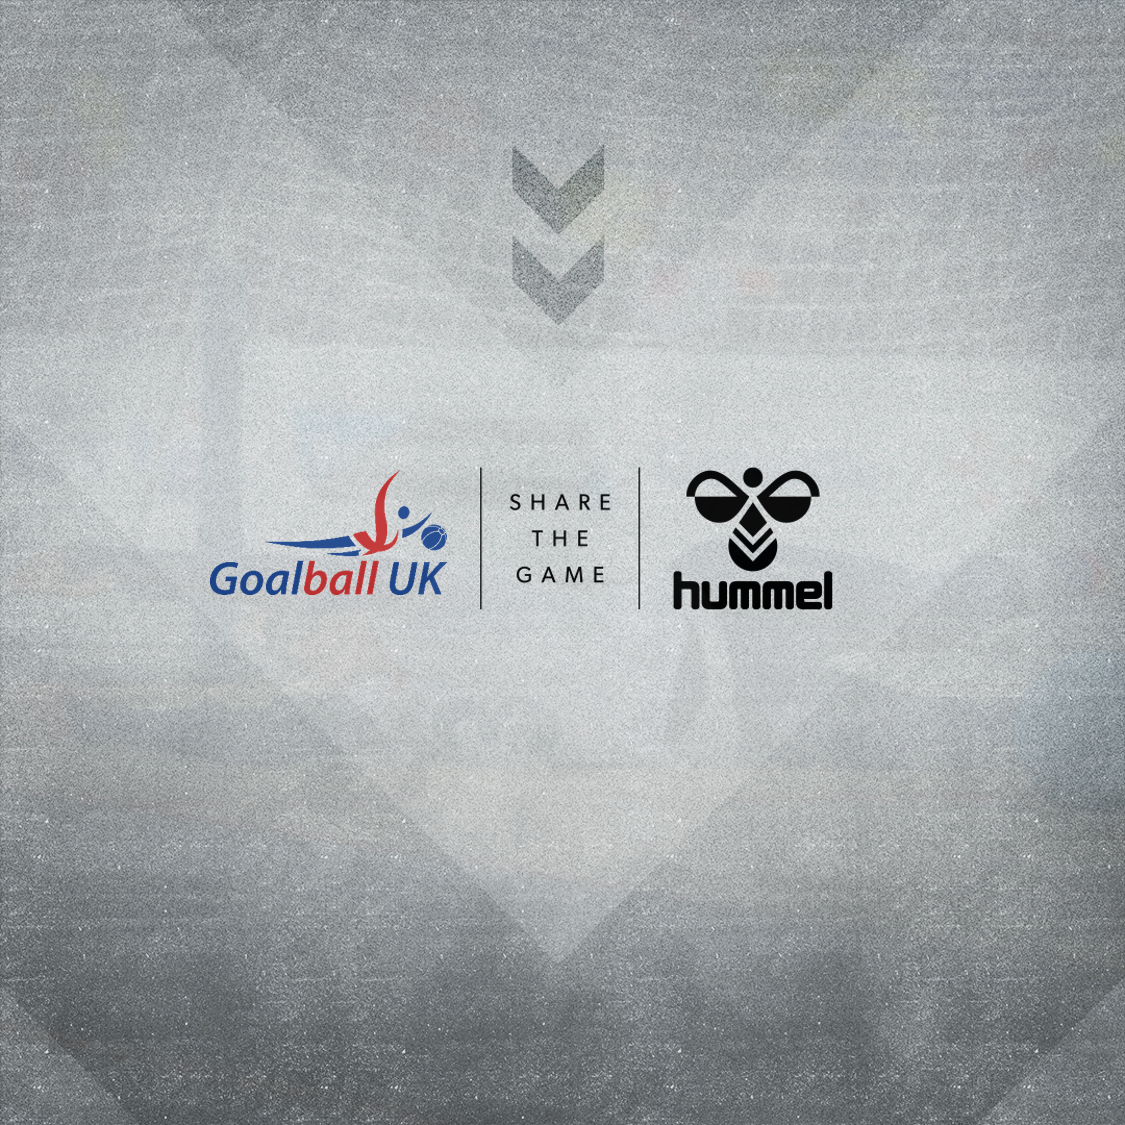 Goalball UK logo in front of a grey background next to Hummel's logo, to announce the partnership!